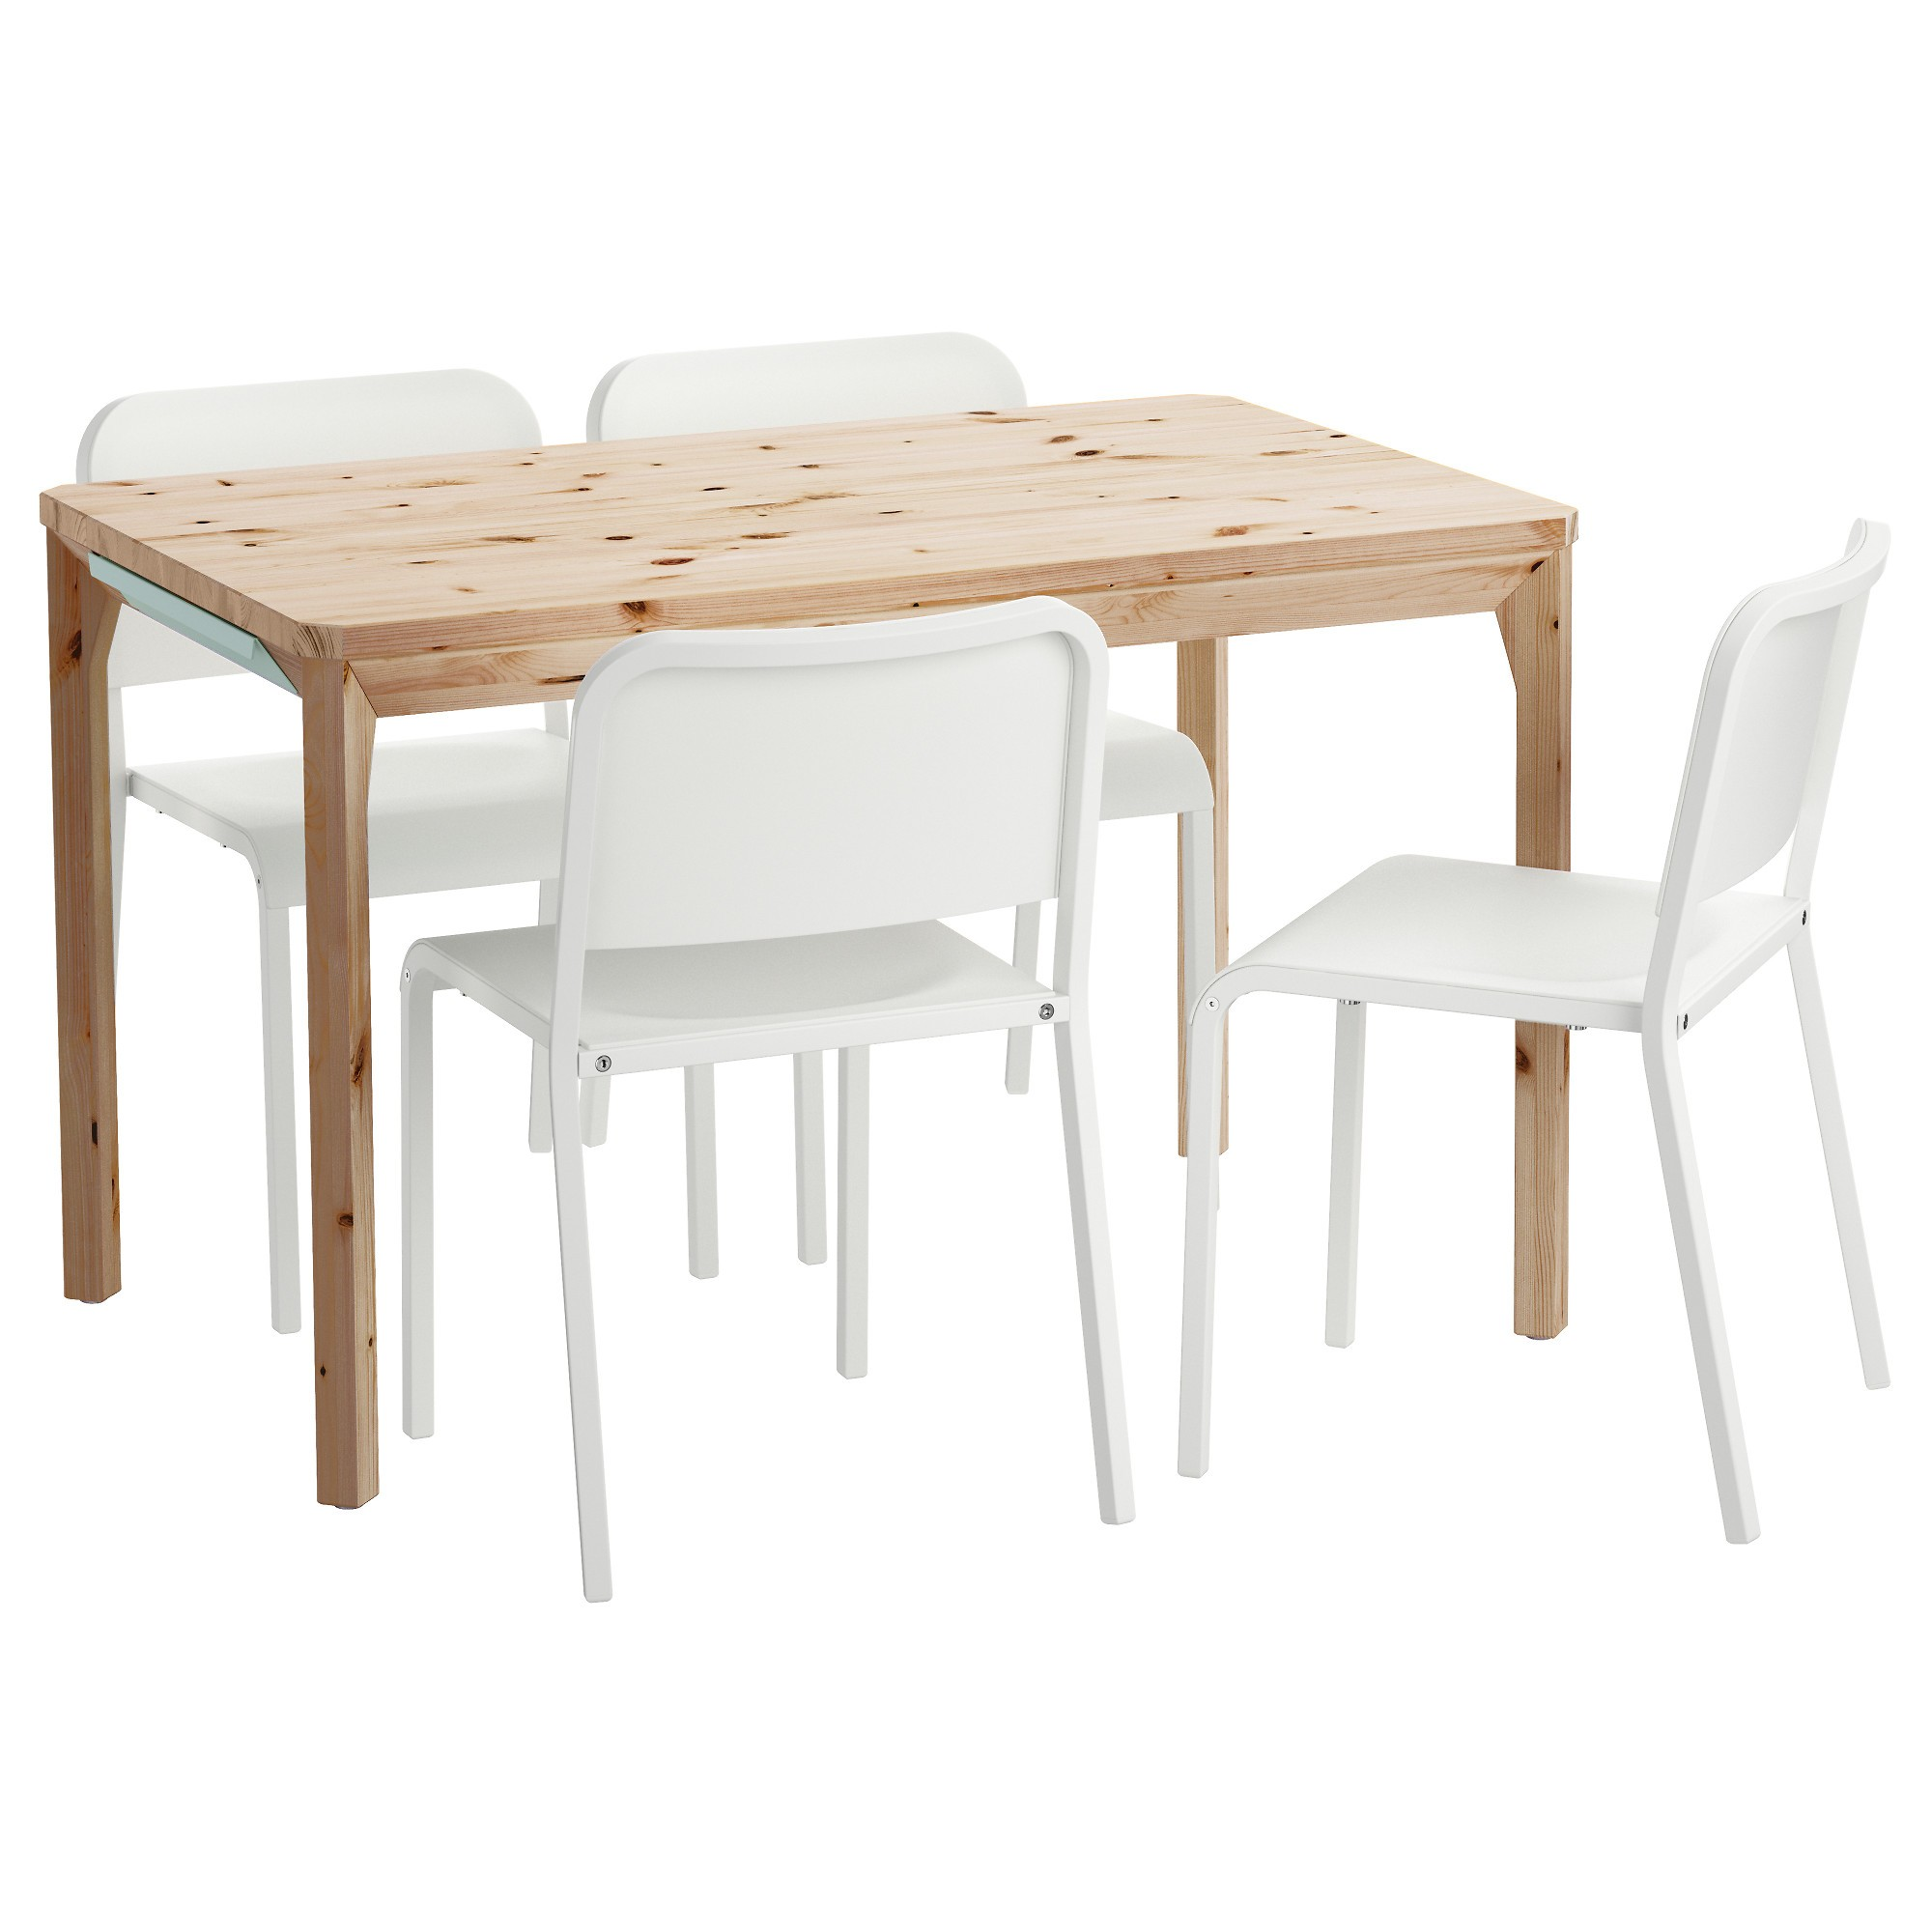 Table pliante avec chaises ikea chaise id es de for Table pliante avec chaise encastrable